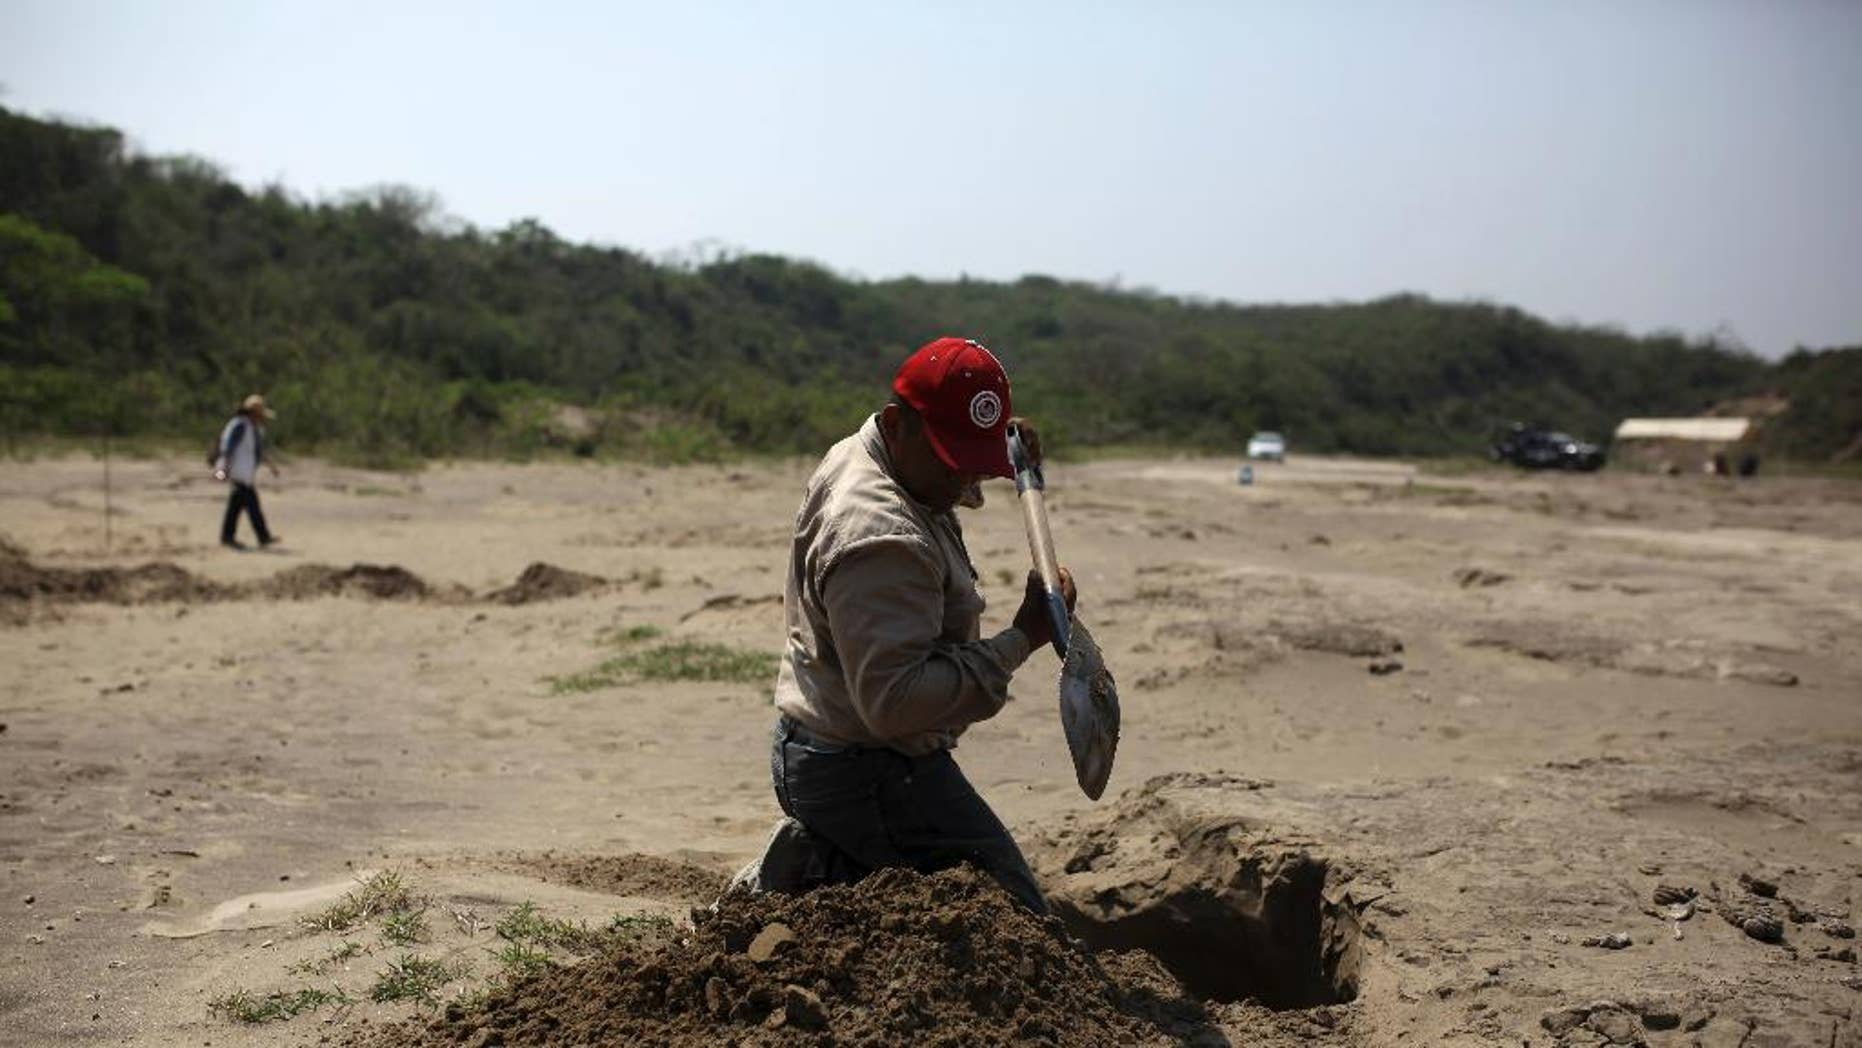 FILE - In this March 30, 2017 file photo, A volunteer searcher digs into the earth at a clandestine grave site in Colinas de Santa Fe, in Mexico's Veracruz state. Mexico's government human rights agency said Thursday that tens of thousands of people have been recorded as missing across the country over the past two decades. And thousands have been reported found in clandestine graves during the drug war of the past 10 years. But the National Human Rights Commission says the exact numbers are a mystery. (AP Photo/Felix Marquez, File)